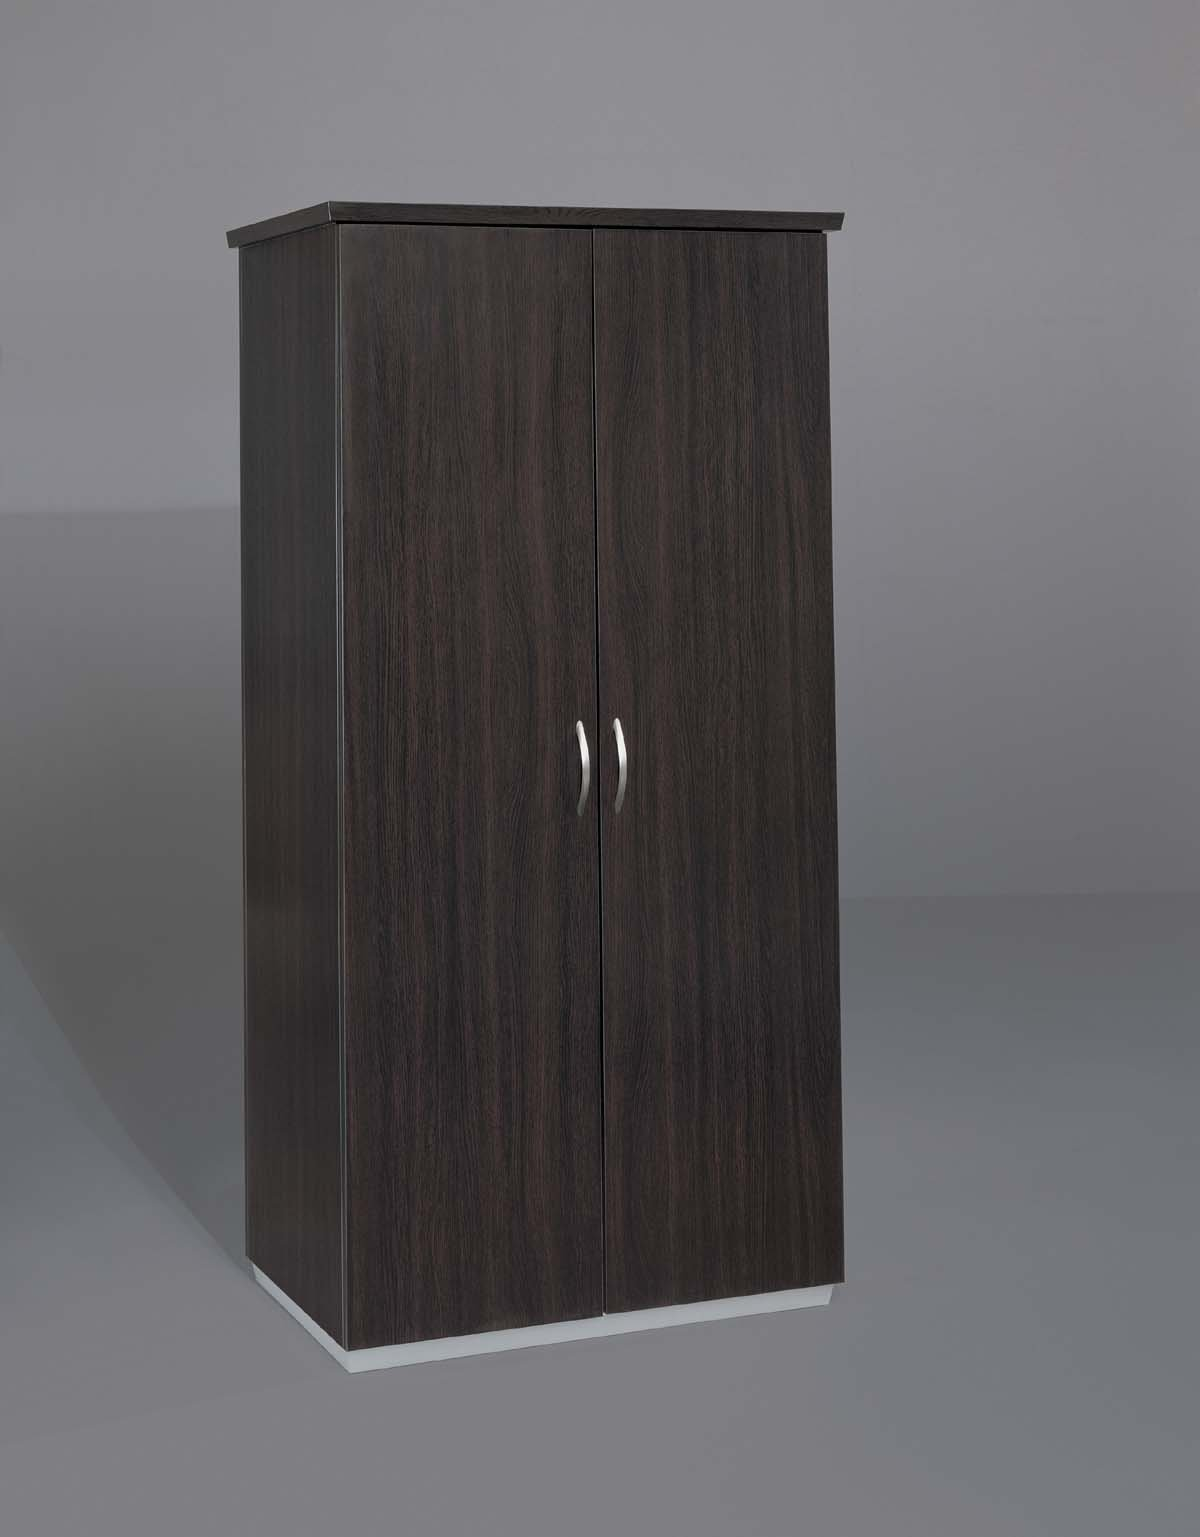 Flexsteel Pimlico  Double Door Wardrobe/Cabinet